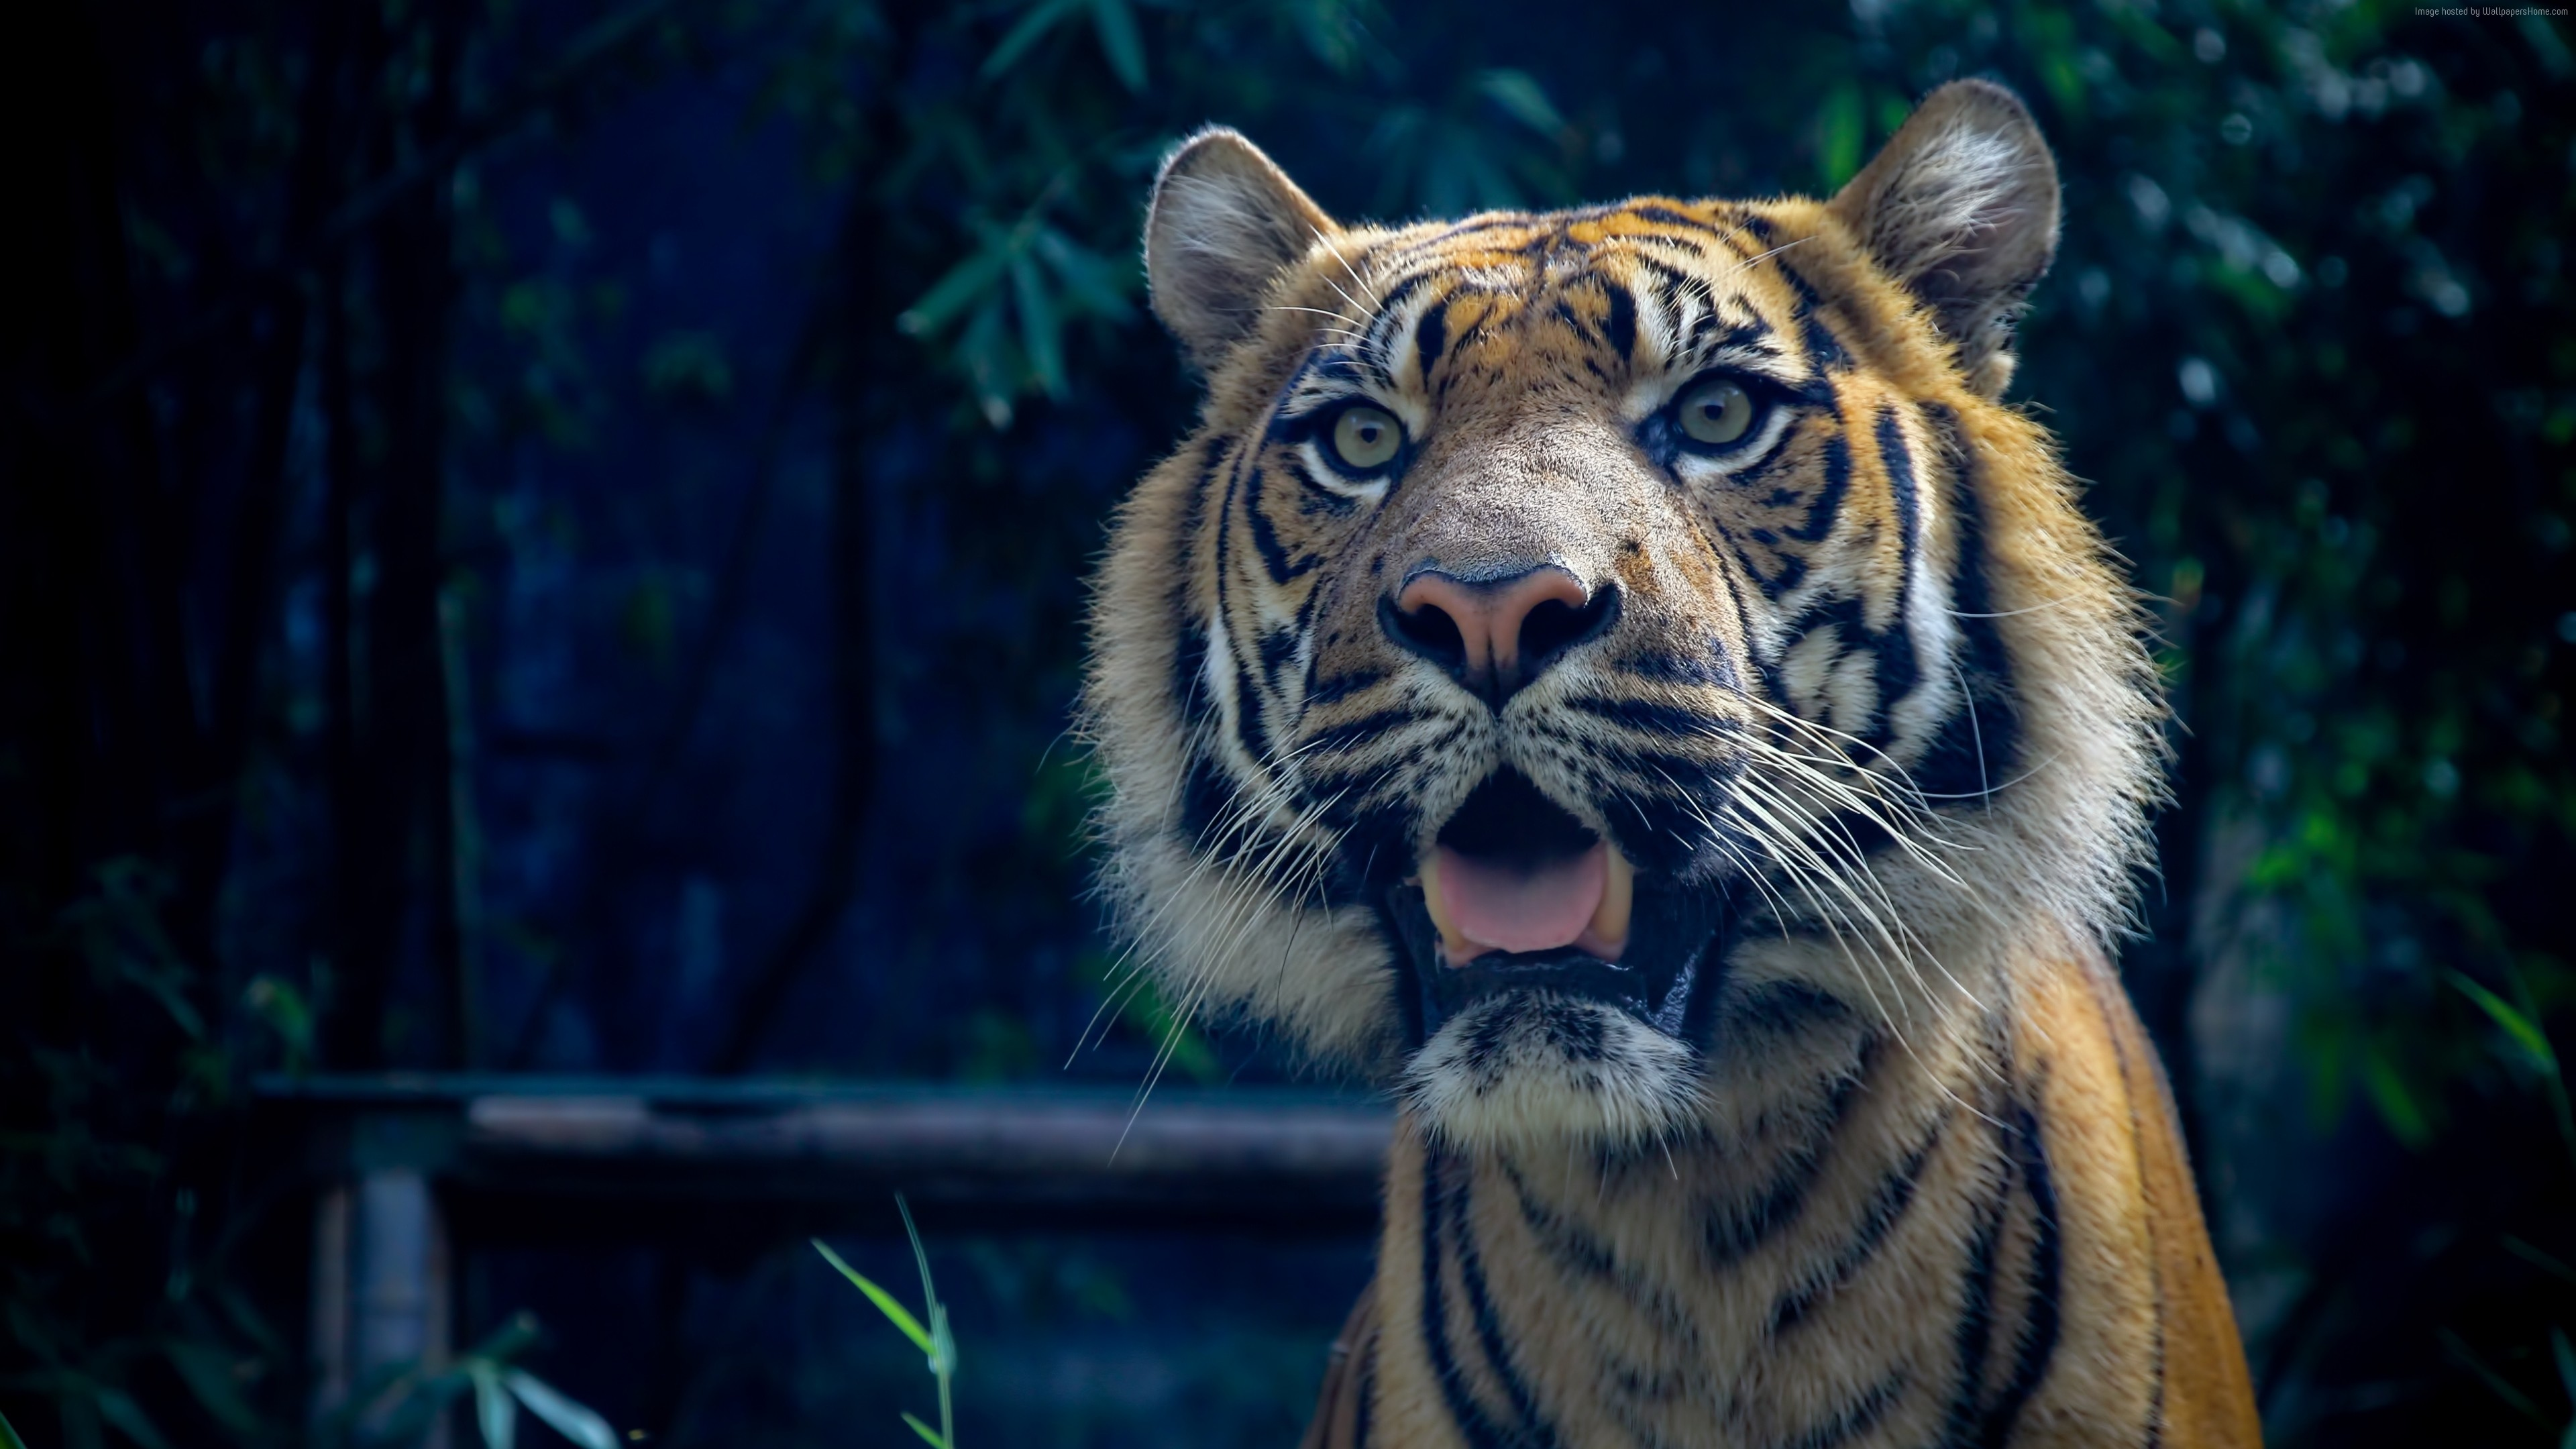 Wallpaper Tiger, 4k, HD wallpaper, Sumatran, amazing eyes, fur, look, Animals